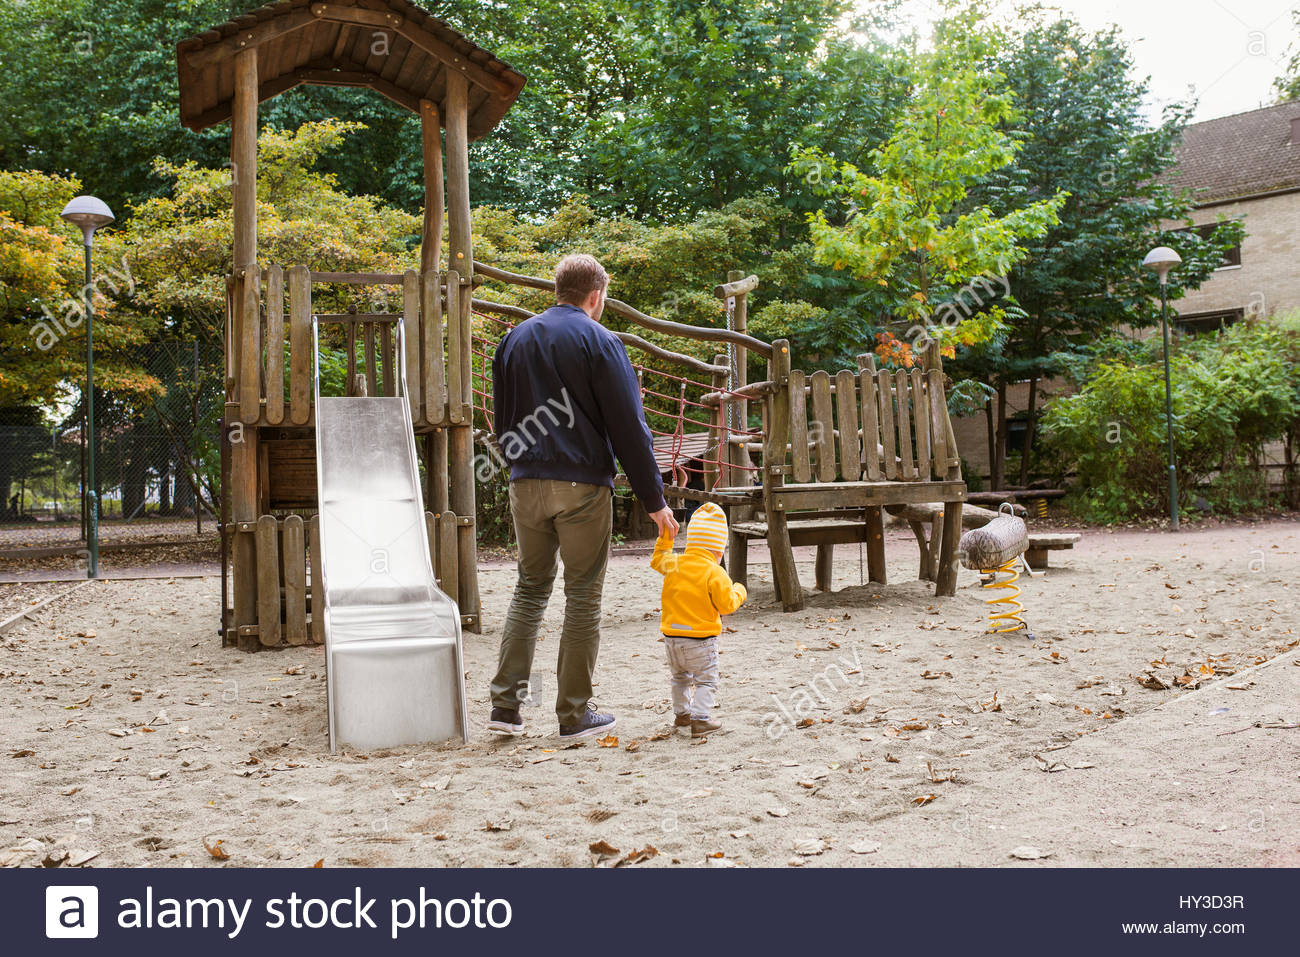 Sweden, Skane, Malmo, Father walking with son ( 12-17 months) next to slide in playground - Stock Image